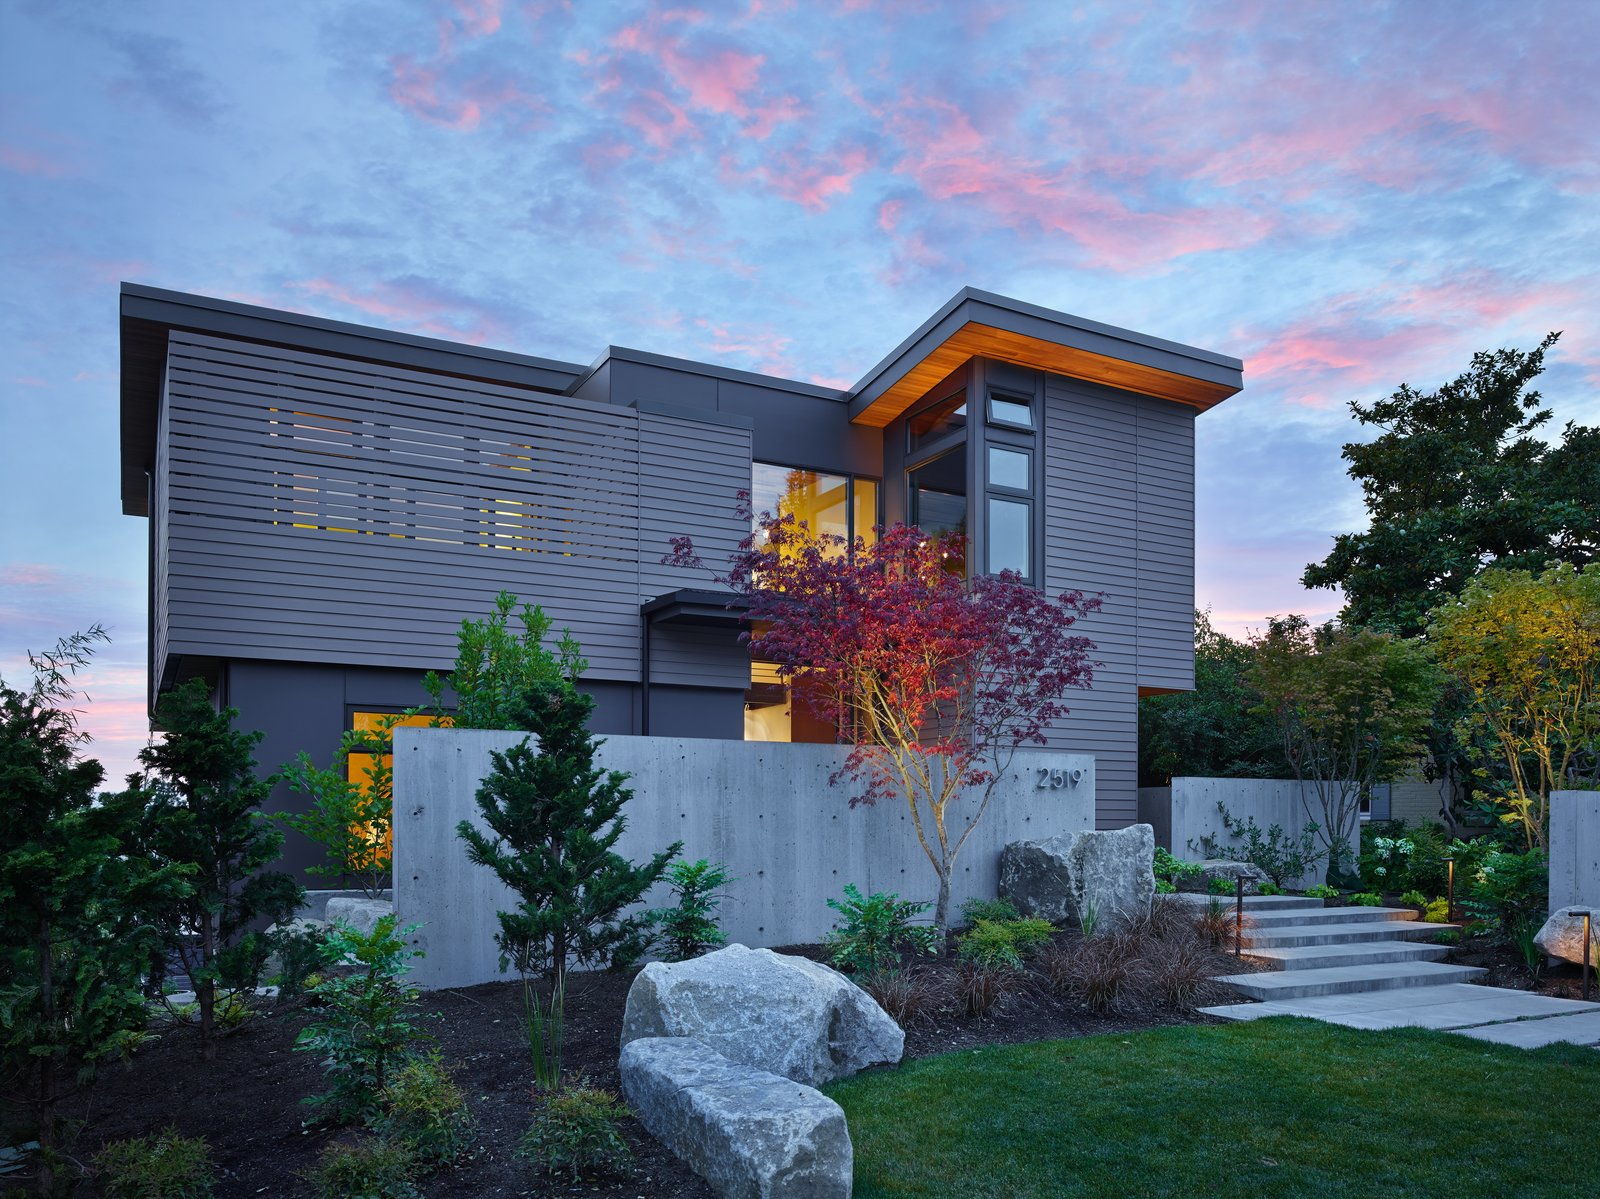 11 of our favorite pacific northwest homes from the community dwell rh dwell com